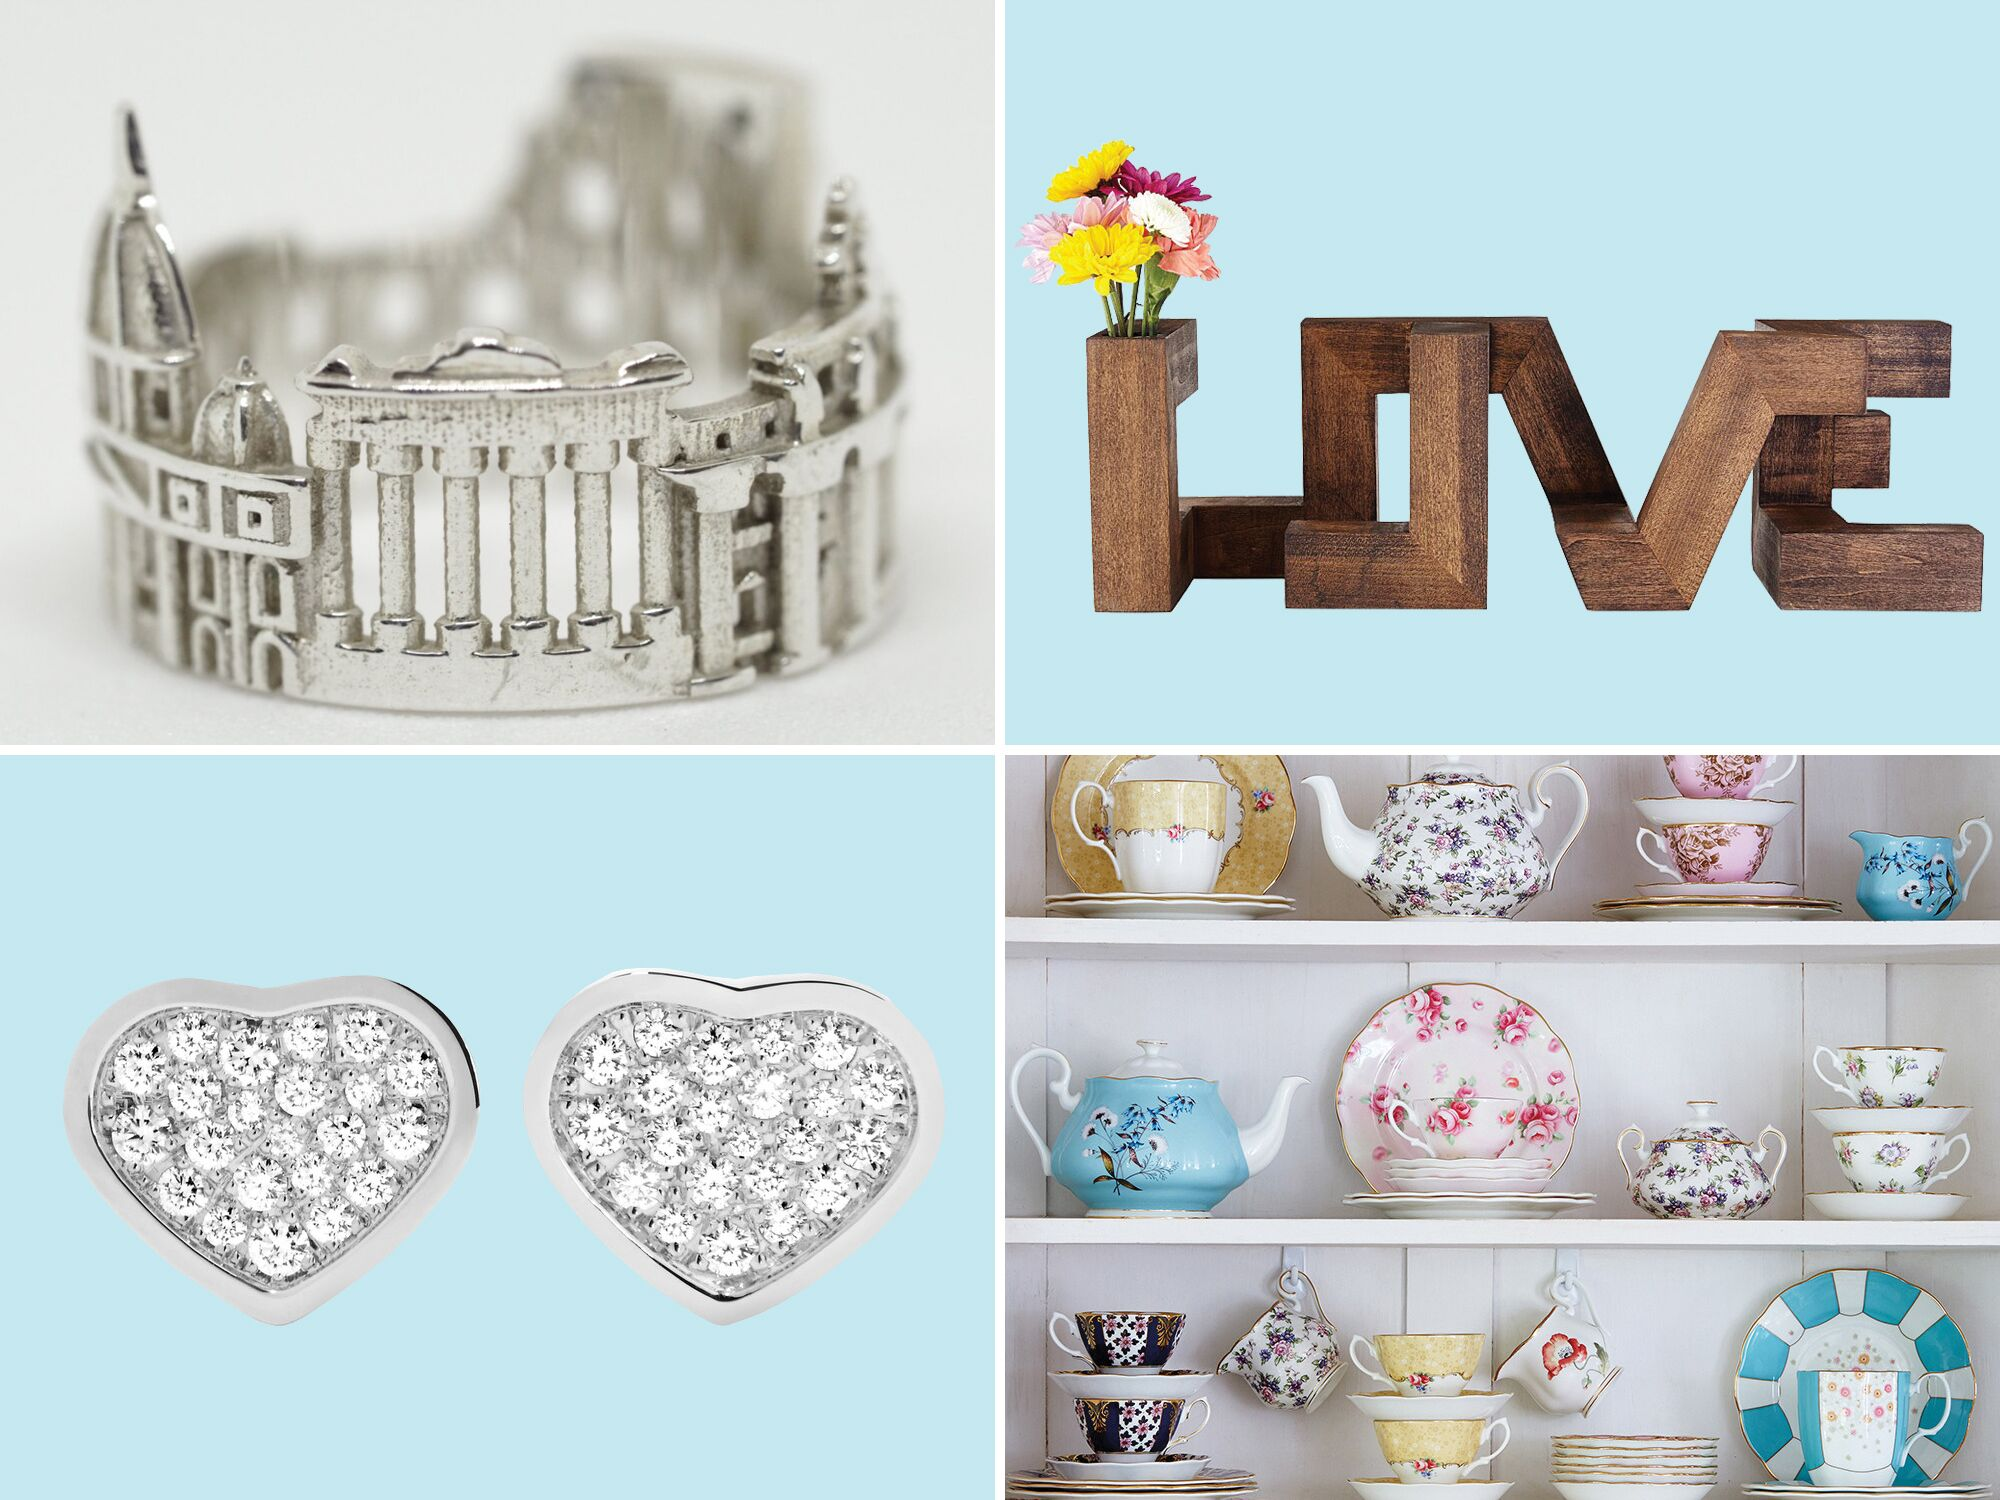 Traditional 25th Wedding Anniversary Gifts: 20 Year Anniversary Gift Ideas